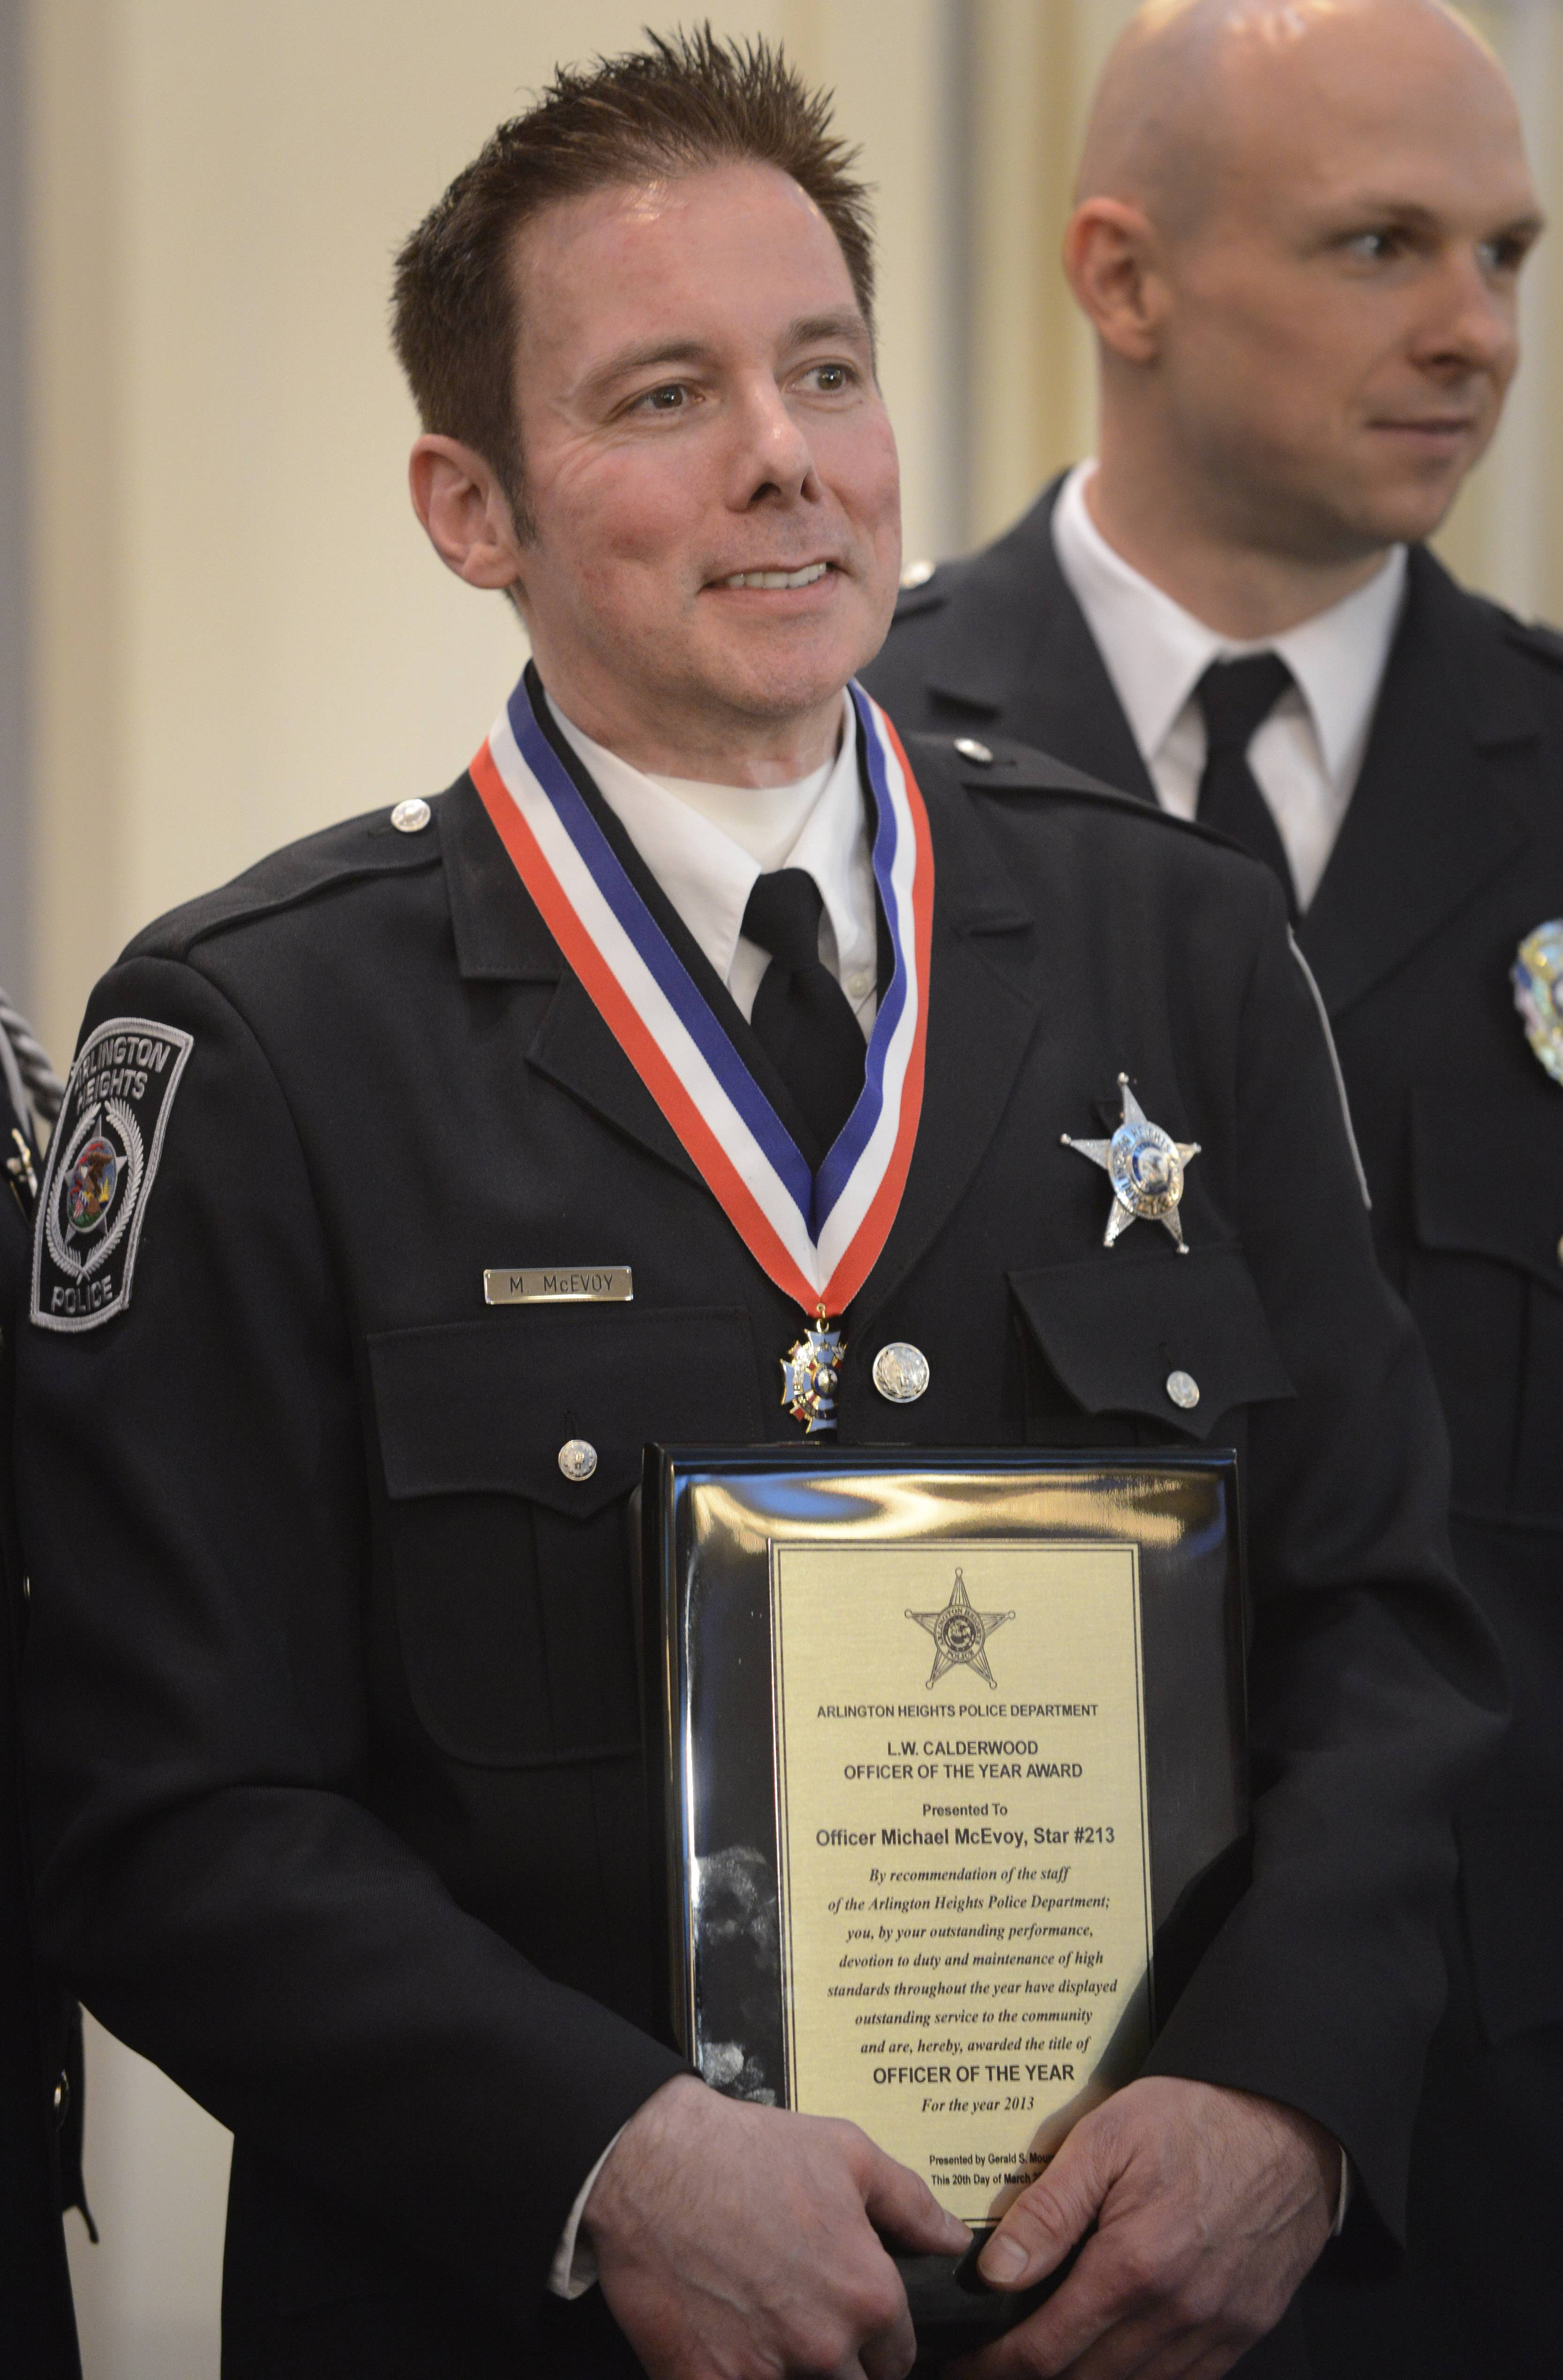 Arlington Heights police officer Michael McEvoy smiles during the ovation.